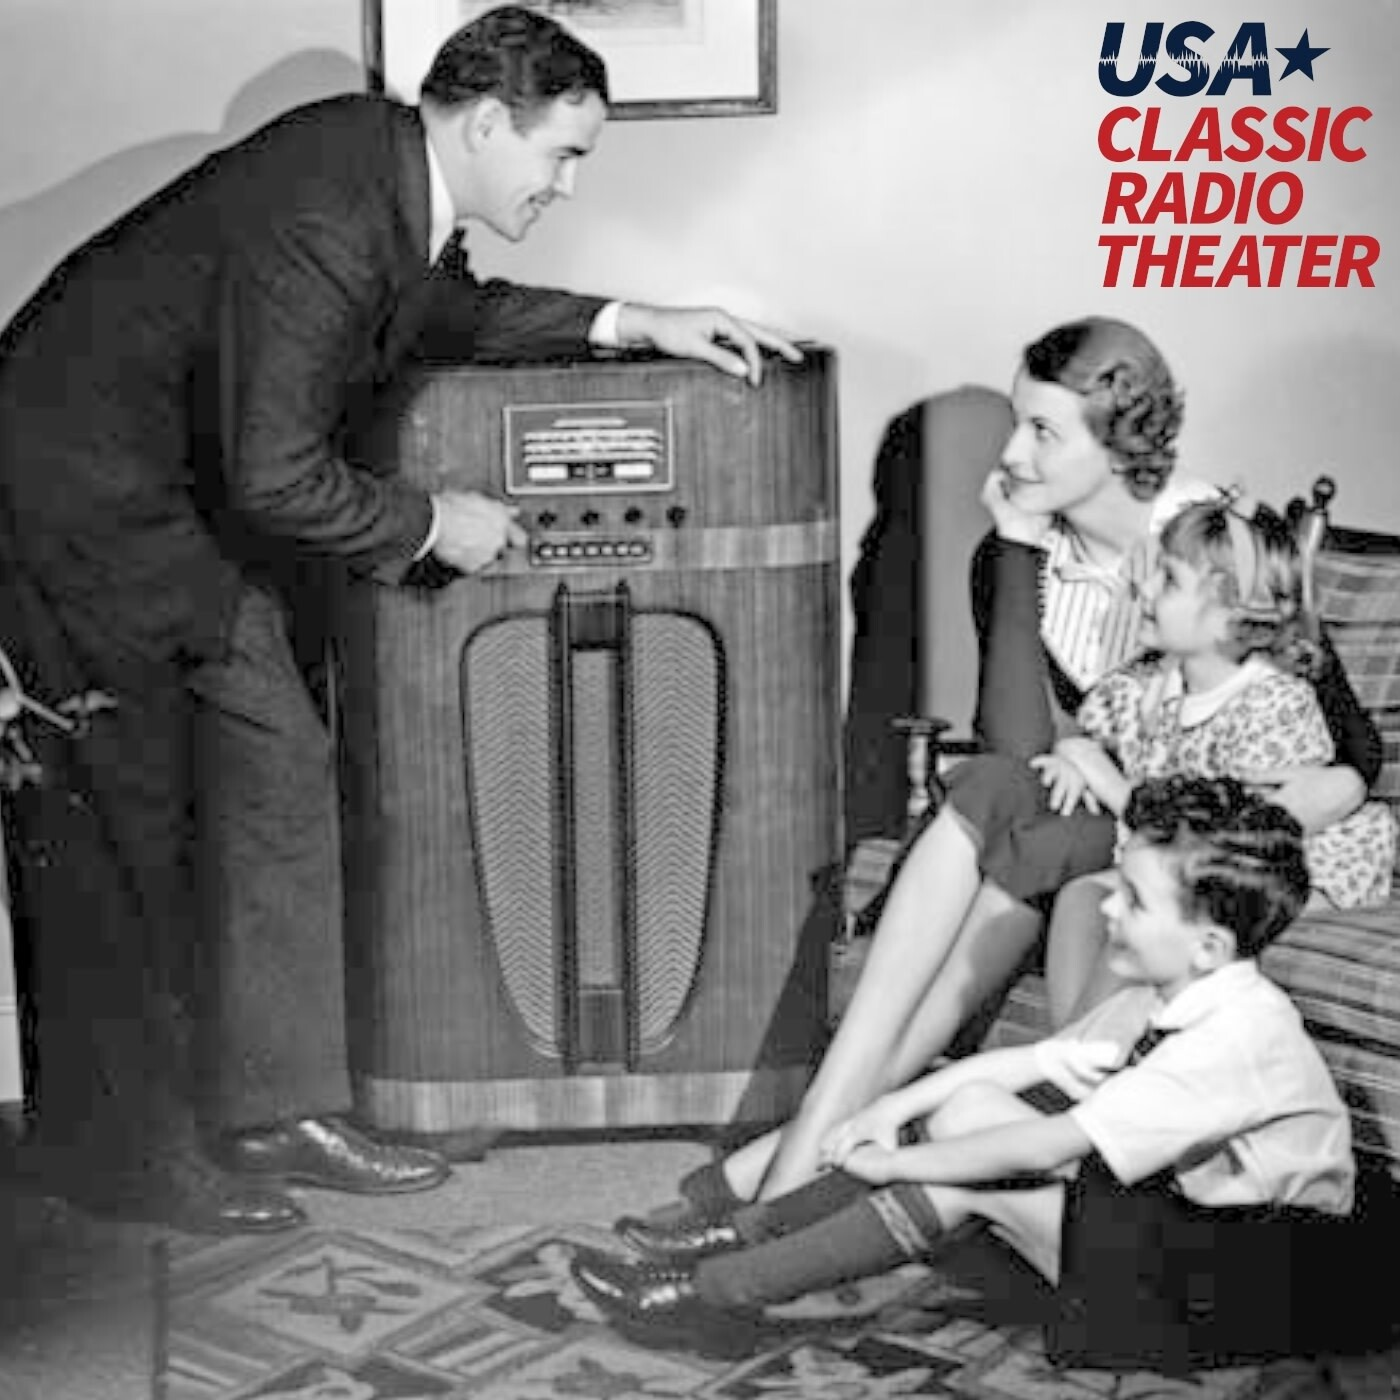 Classic Radio Theater for October 21, 2020 Hour 3 - That darned cricket